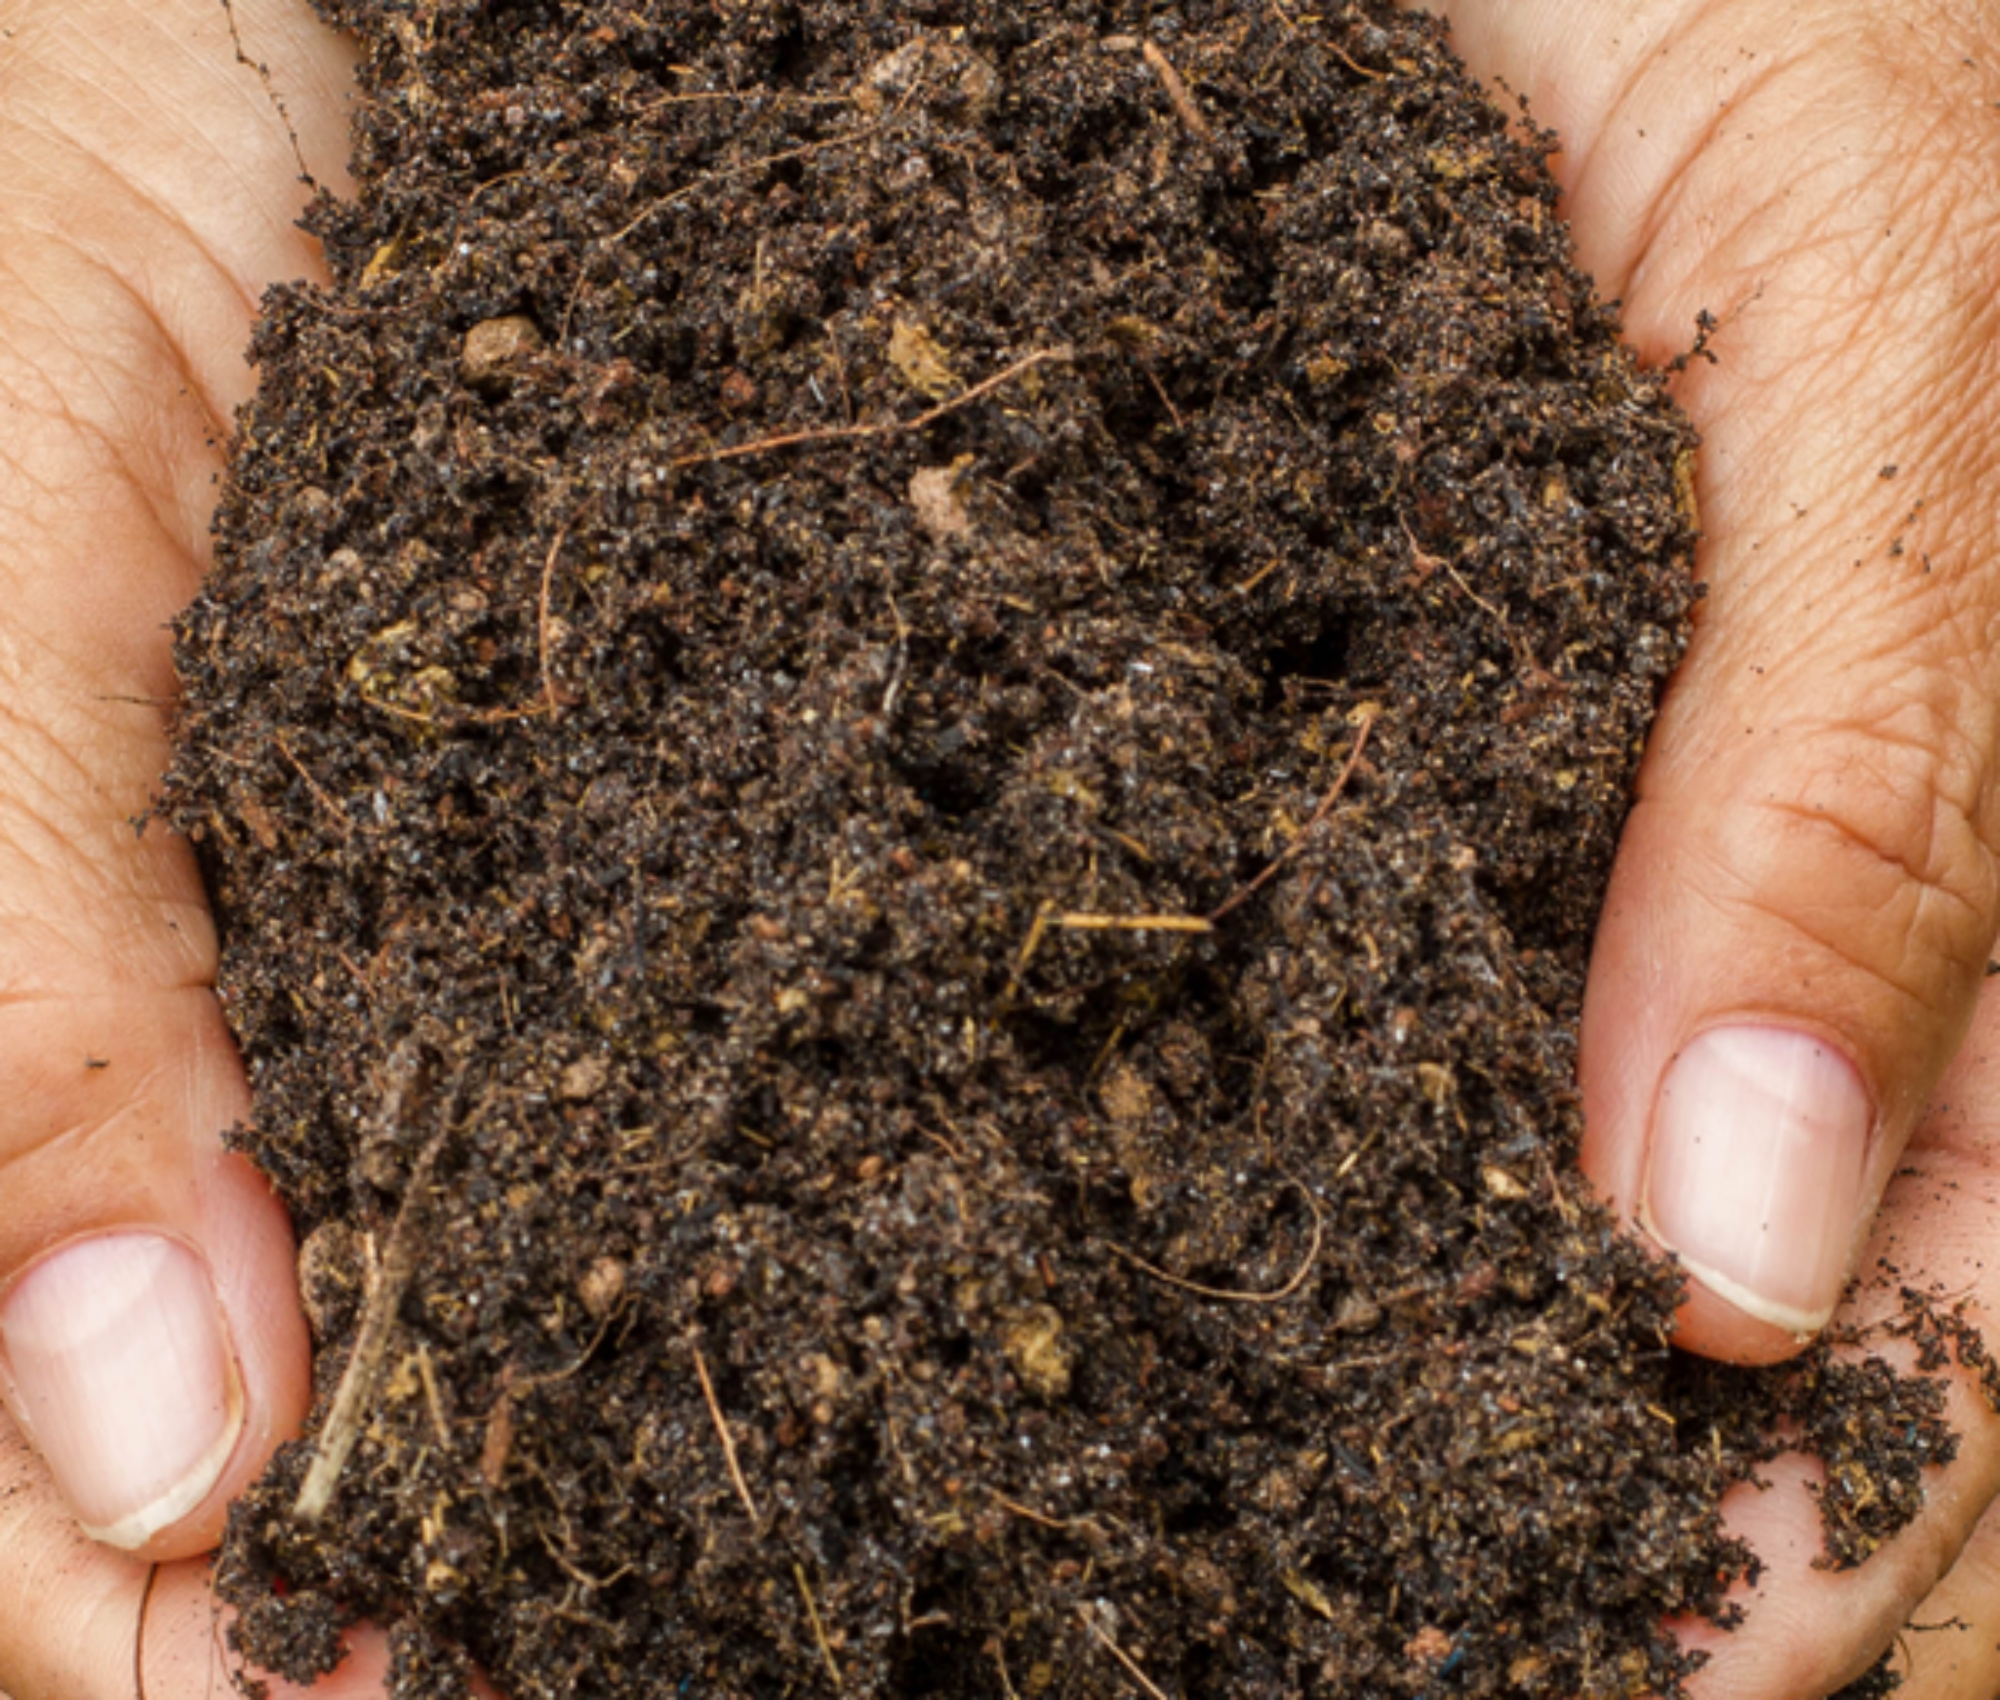 Person holding soil